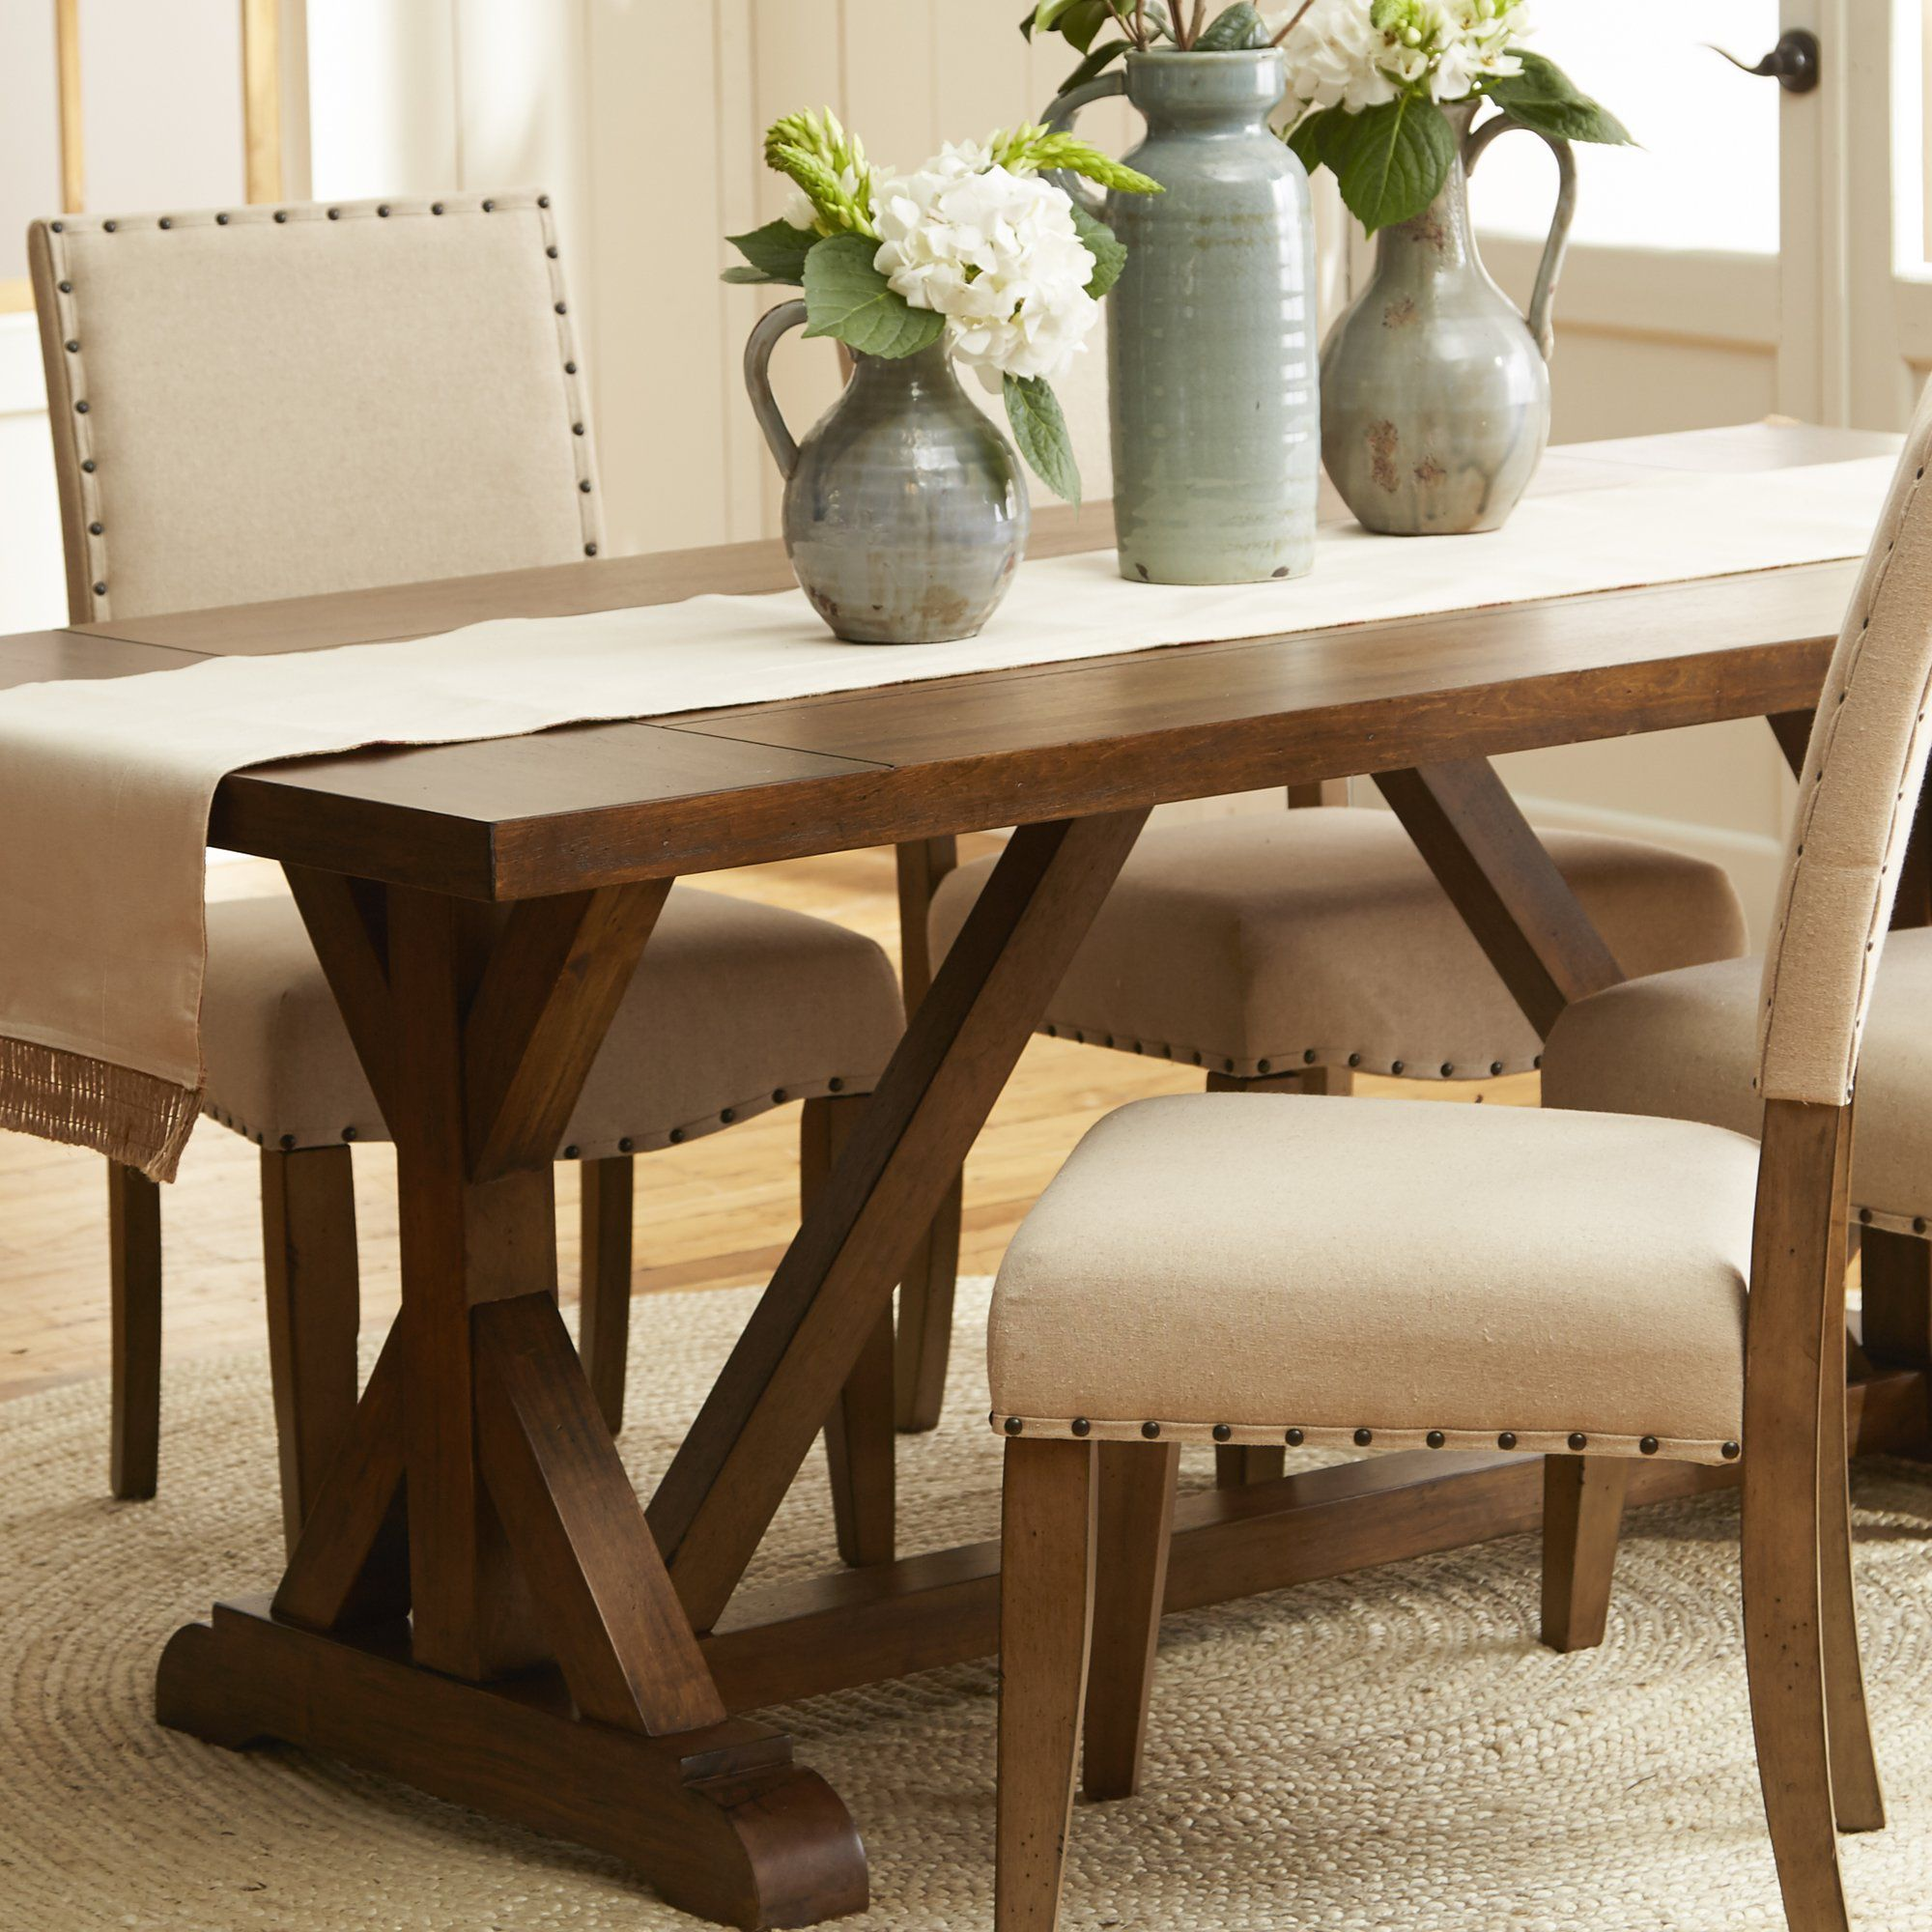 Winger Park Dining Table Buy Winger Park Dining Table Online At